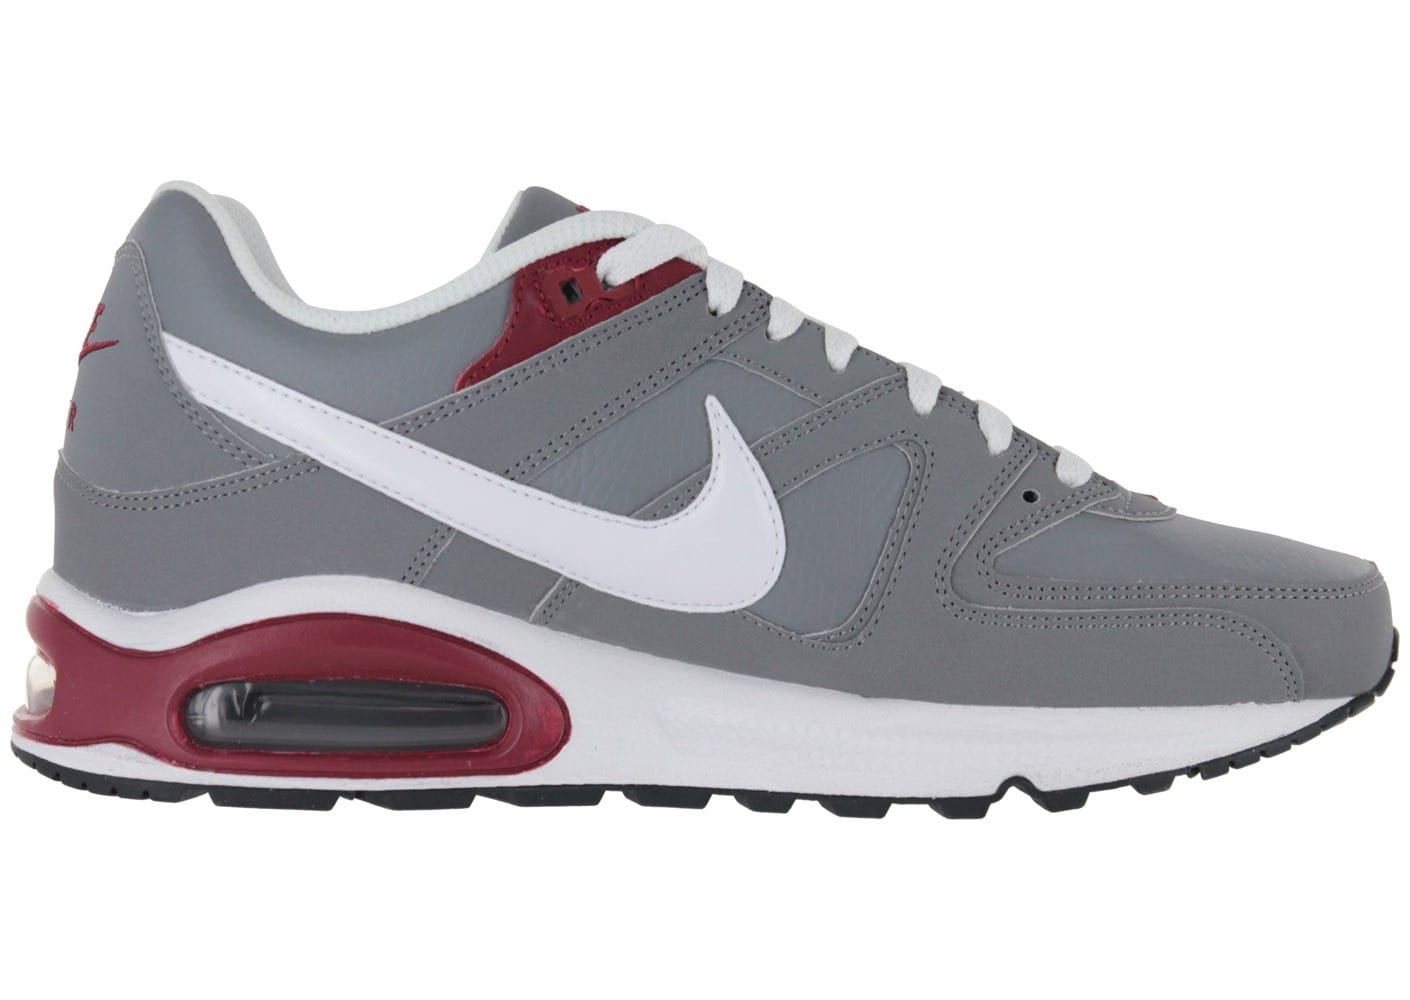 nike air max command cuir grise chaussures baskets homme chausport. Black Bedroom Furniture Sets. Home Design Ideas